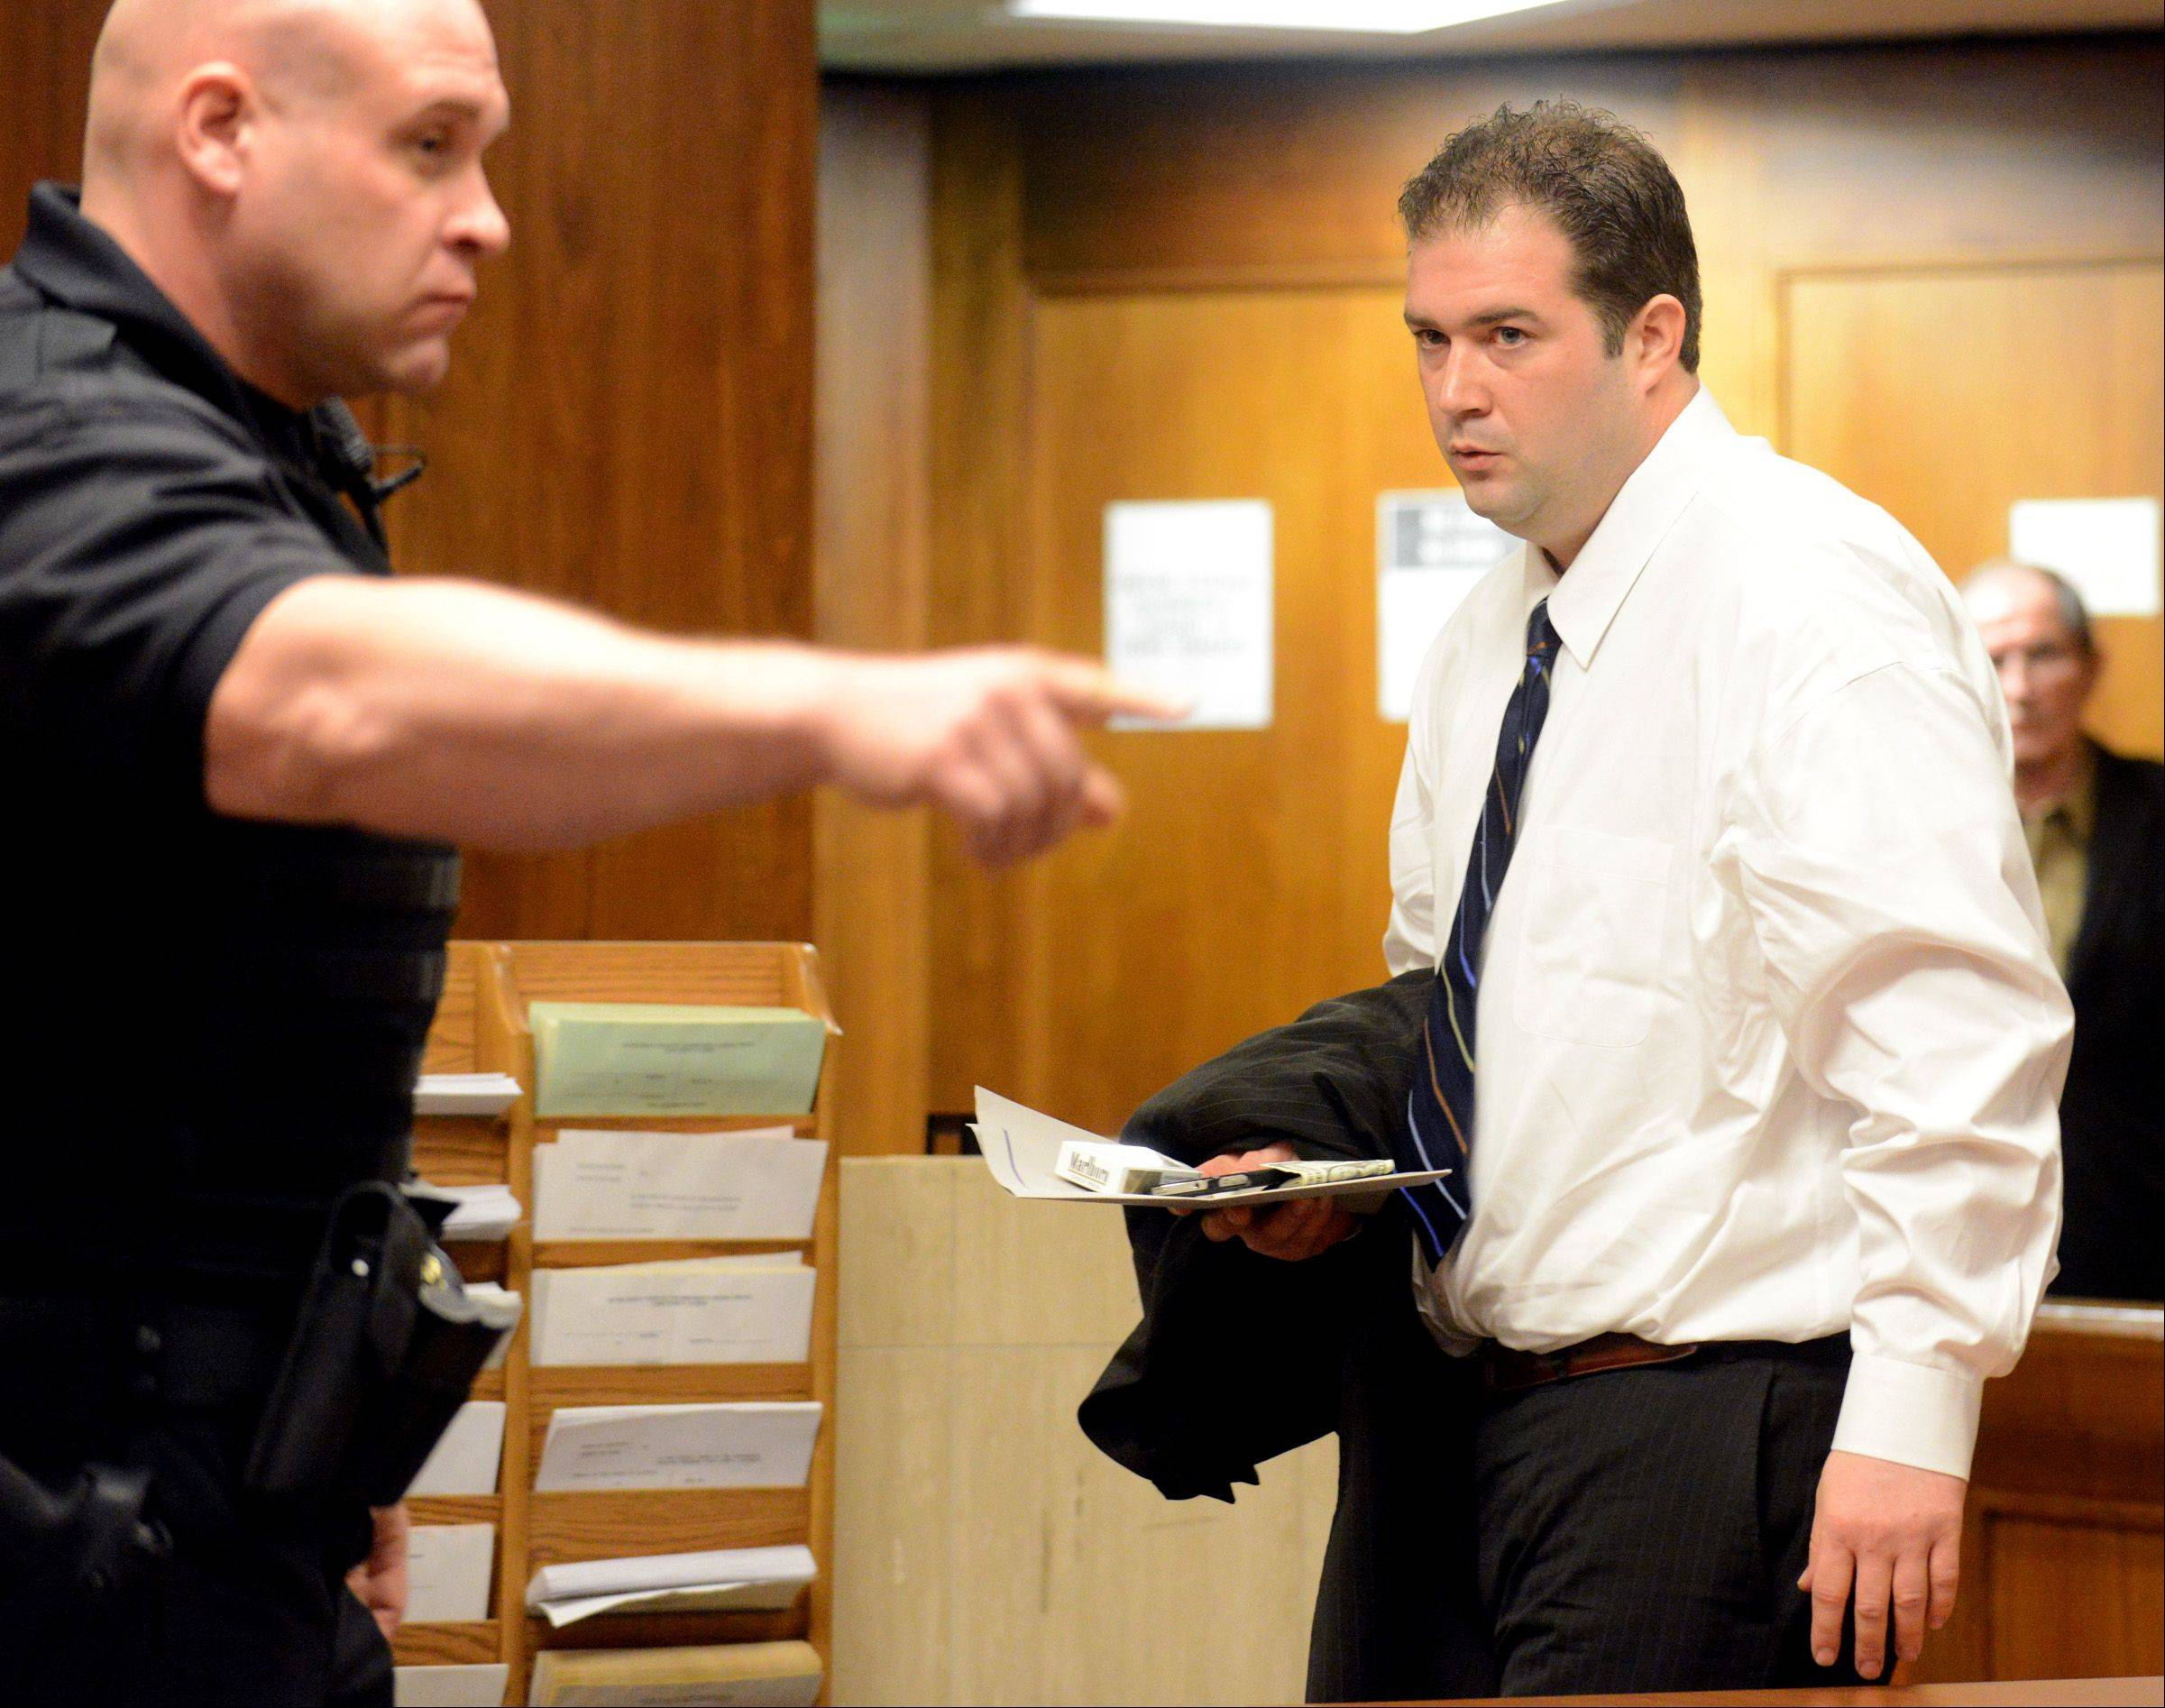 A Lake County sheriff's deputy shows Matthew Padour, 31, of Libertyville to a room in the Lake County courthouse after being sentenced by Judge Raymond Collins for attacking a Metra conductor in April 2012.